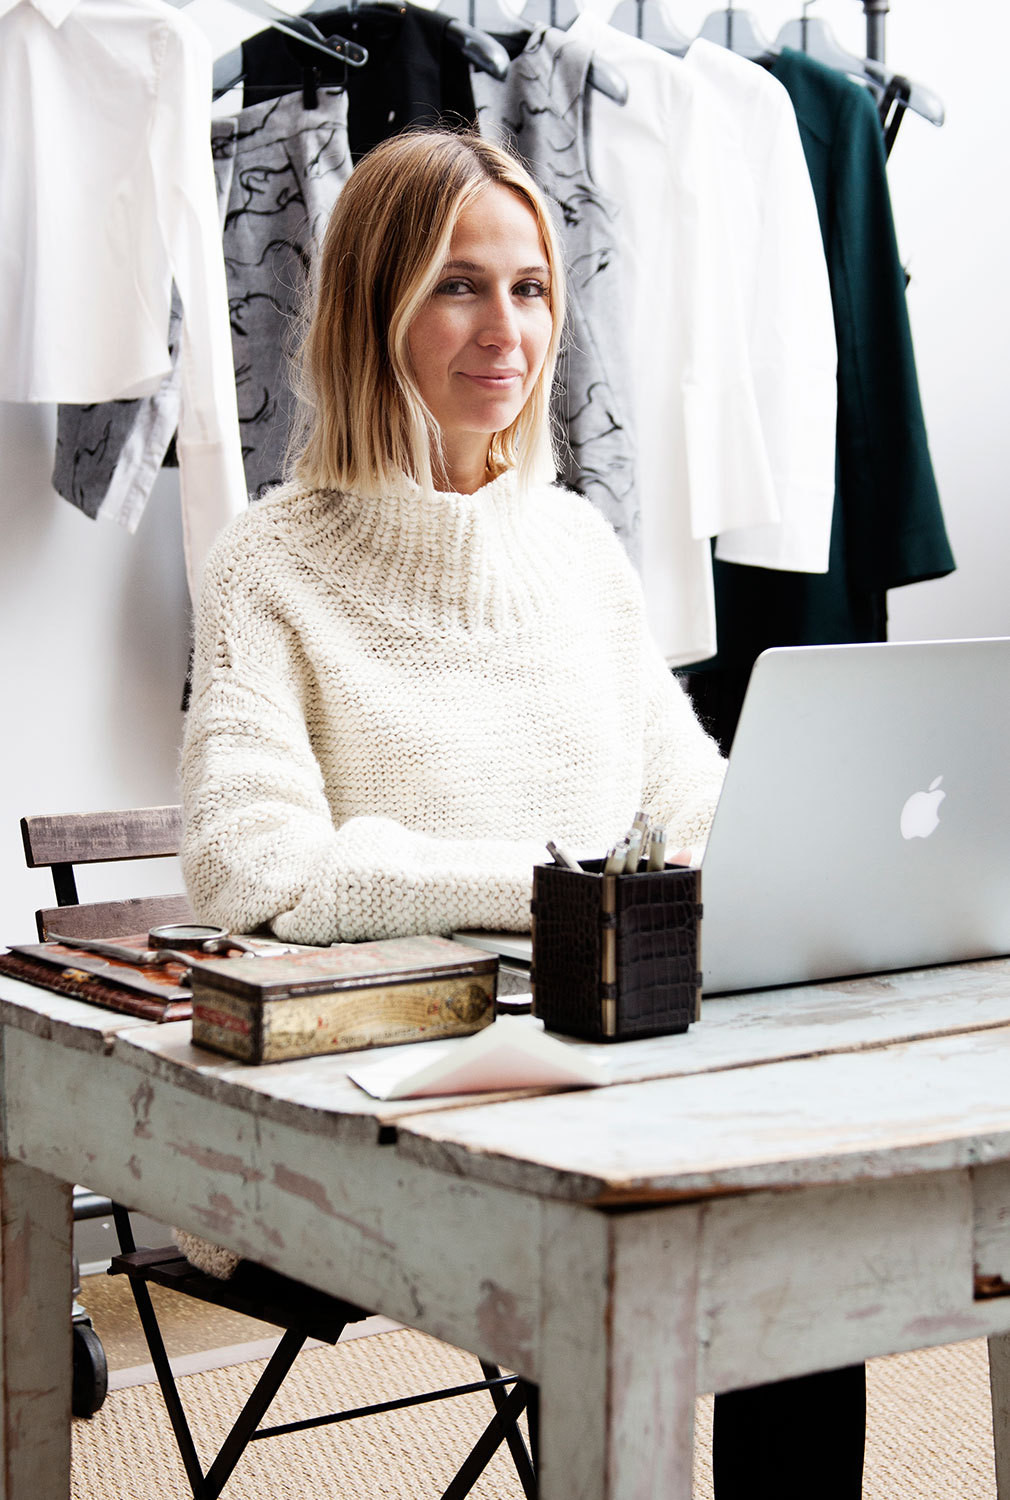 The designer at work in her headquarters in New York City's Garment District.